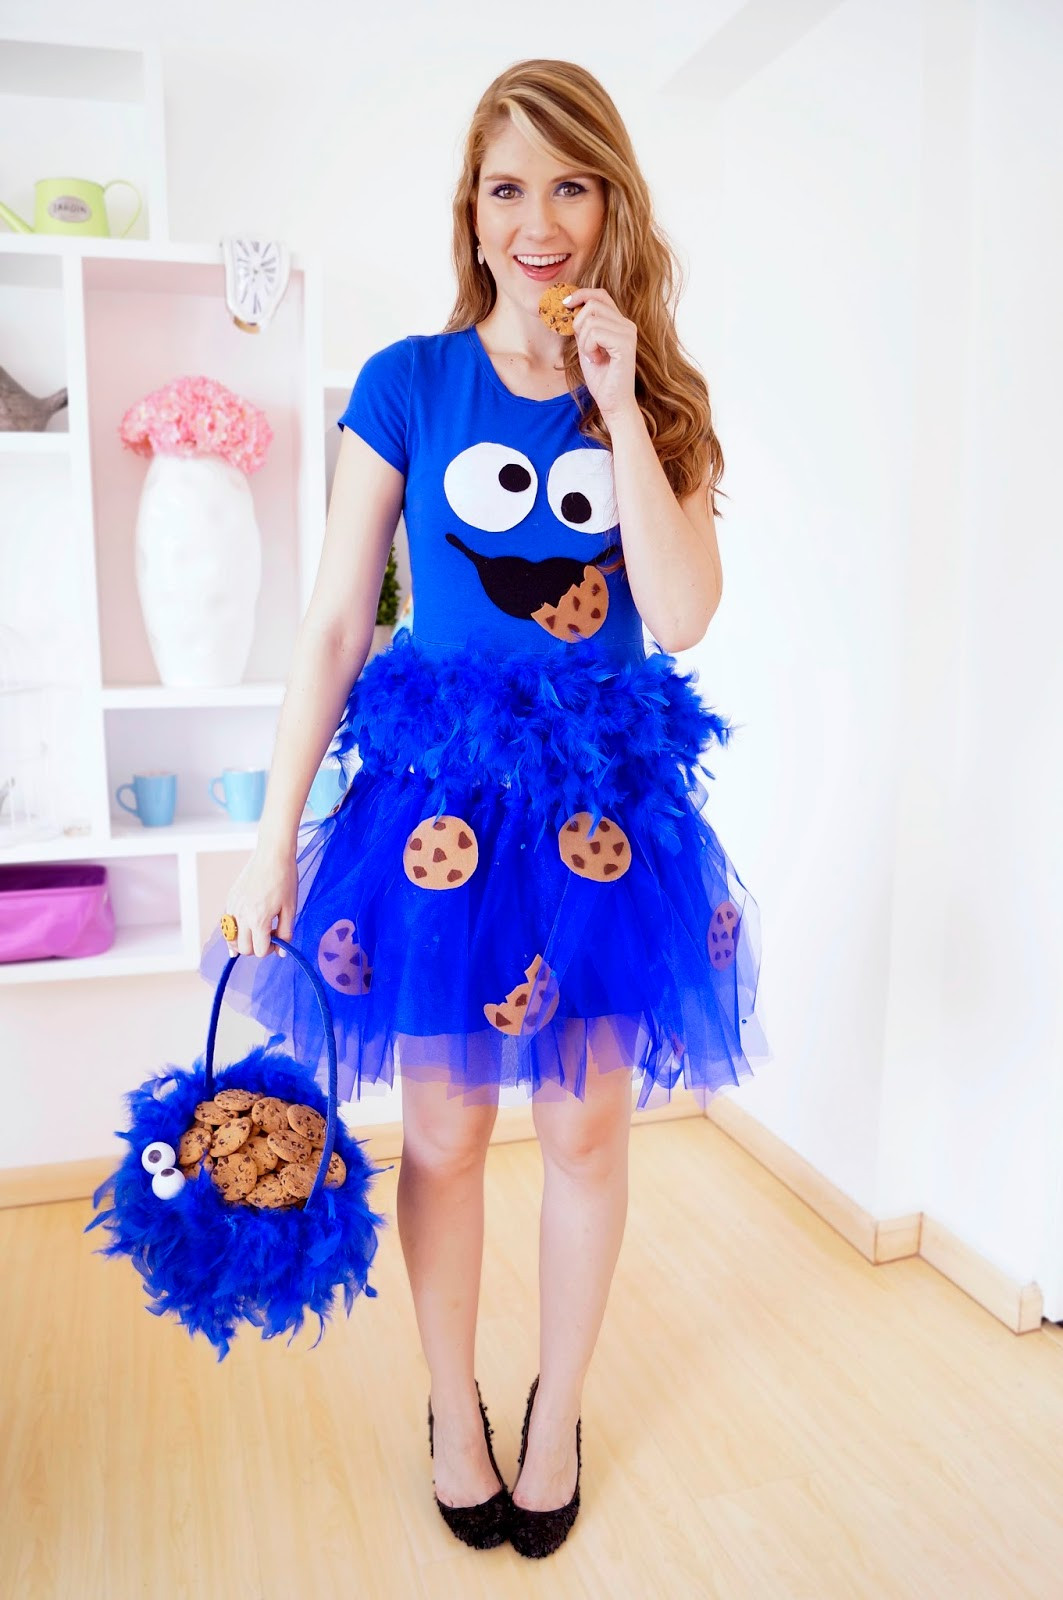 Best ideas about DIY Cute Costume . Save or Pin The 15 Best DIY Halloween Costumes for Adults Now.